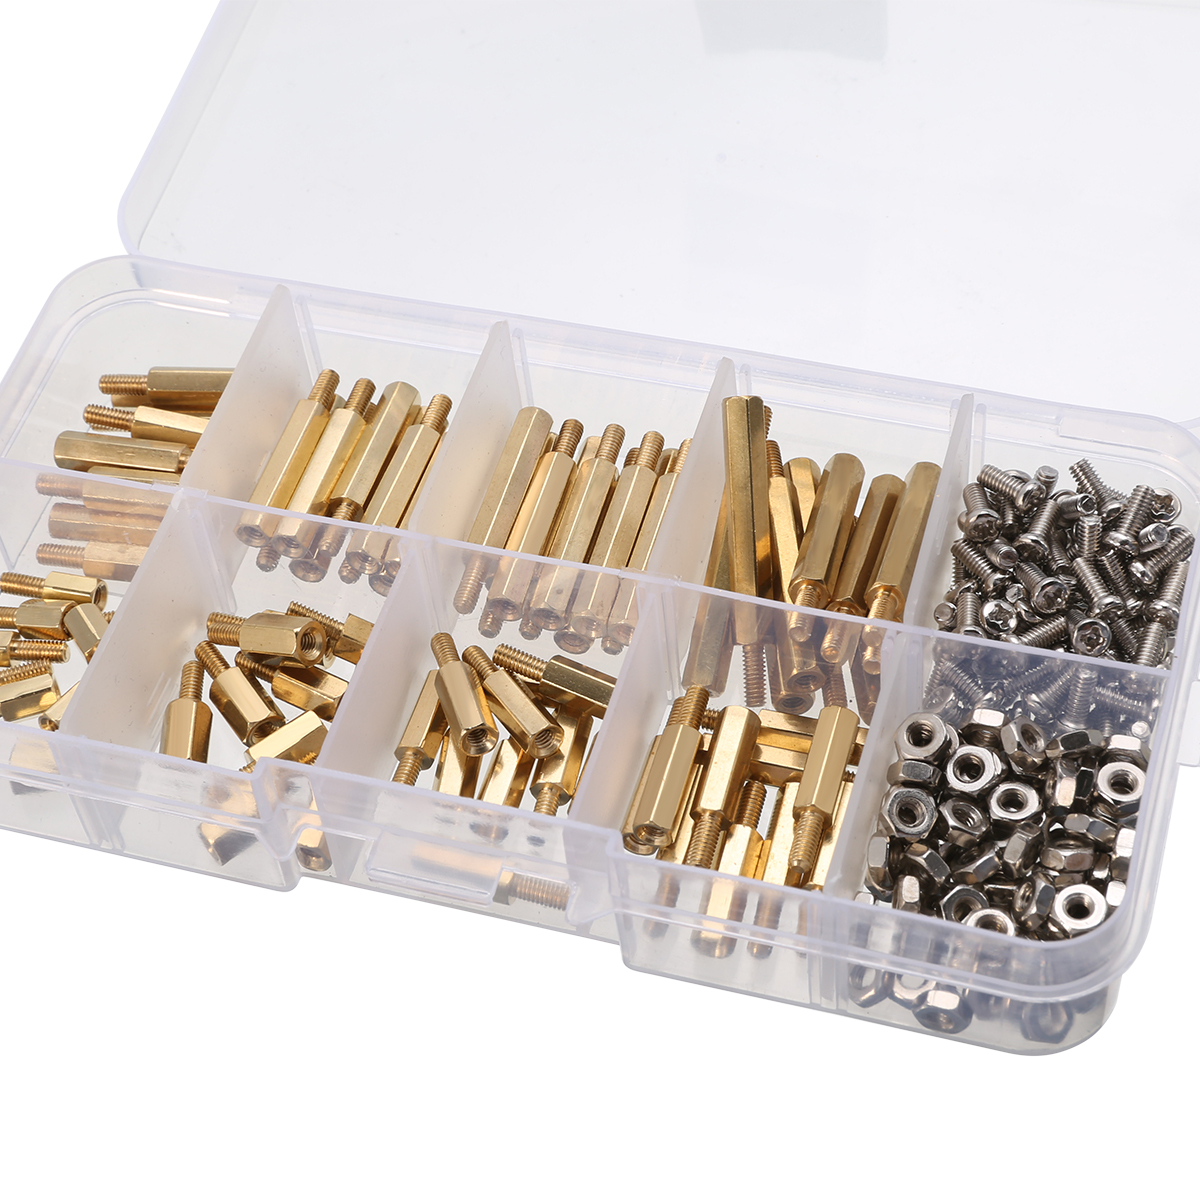 240pcs Waterproof M2.5 Hex Male-Female Standoff/Screw/Nut Assortment Kit with Rust Resistant For Raspberry-Pi Spacer